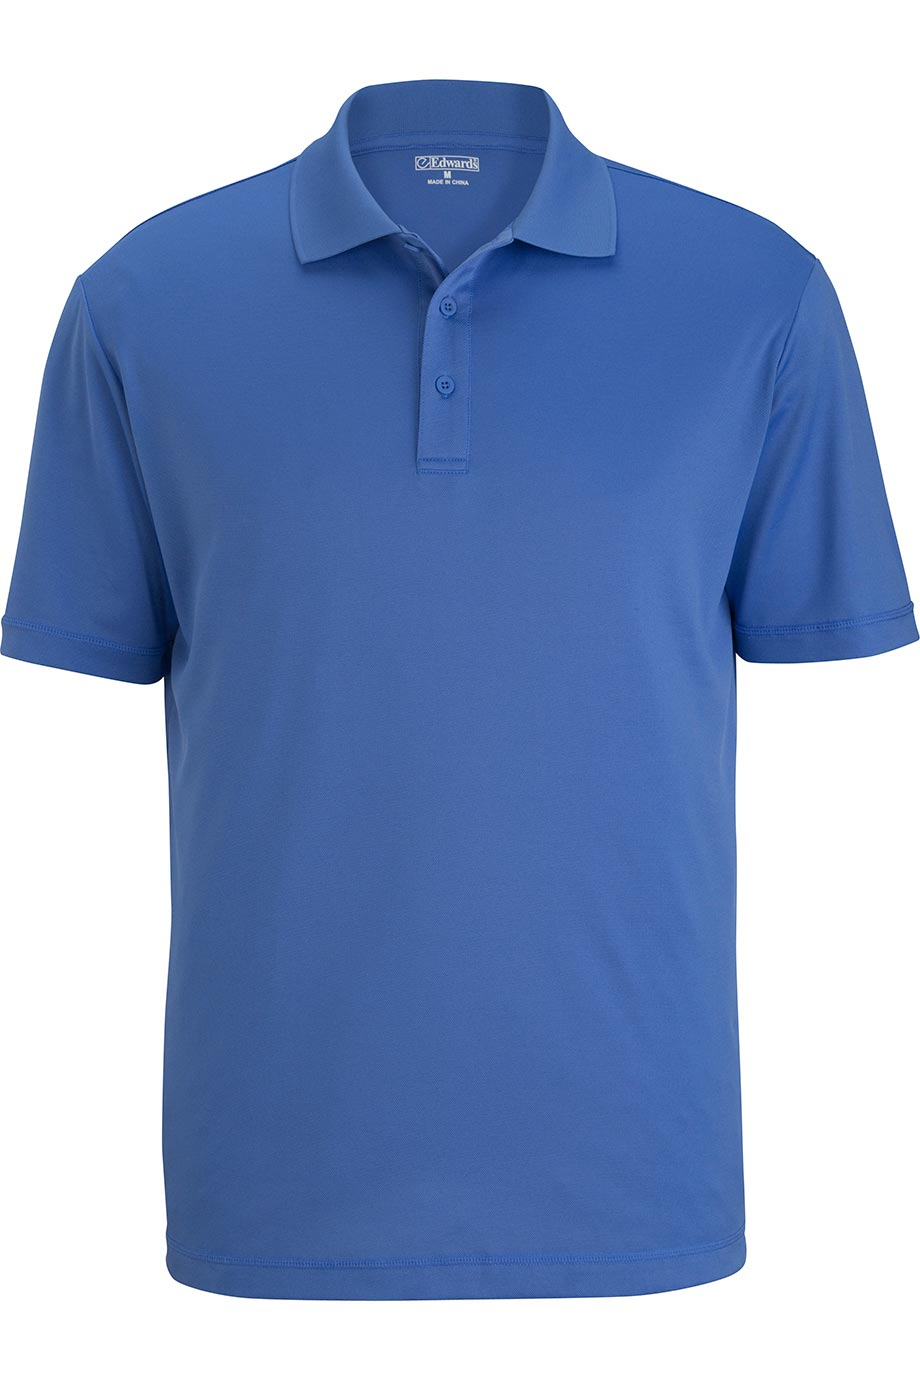 French Blue Edwards Mens Durable Performance Polo